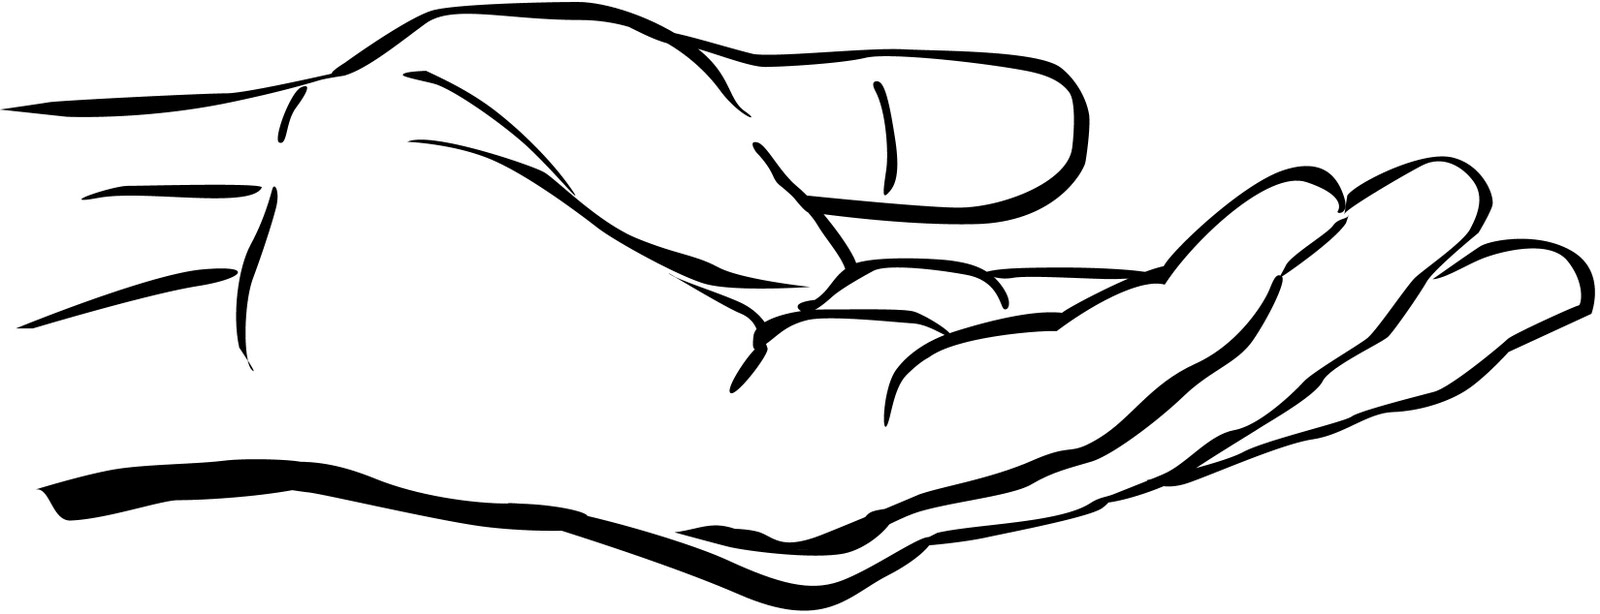 Hands Clipart Black And White | Clipart Panda - Free ...